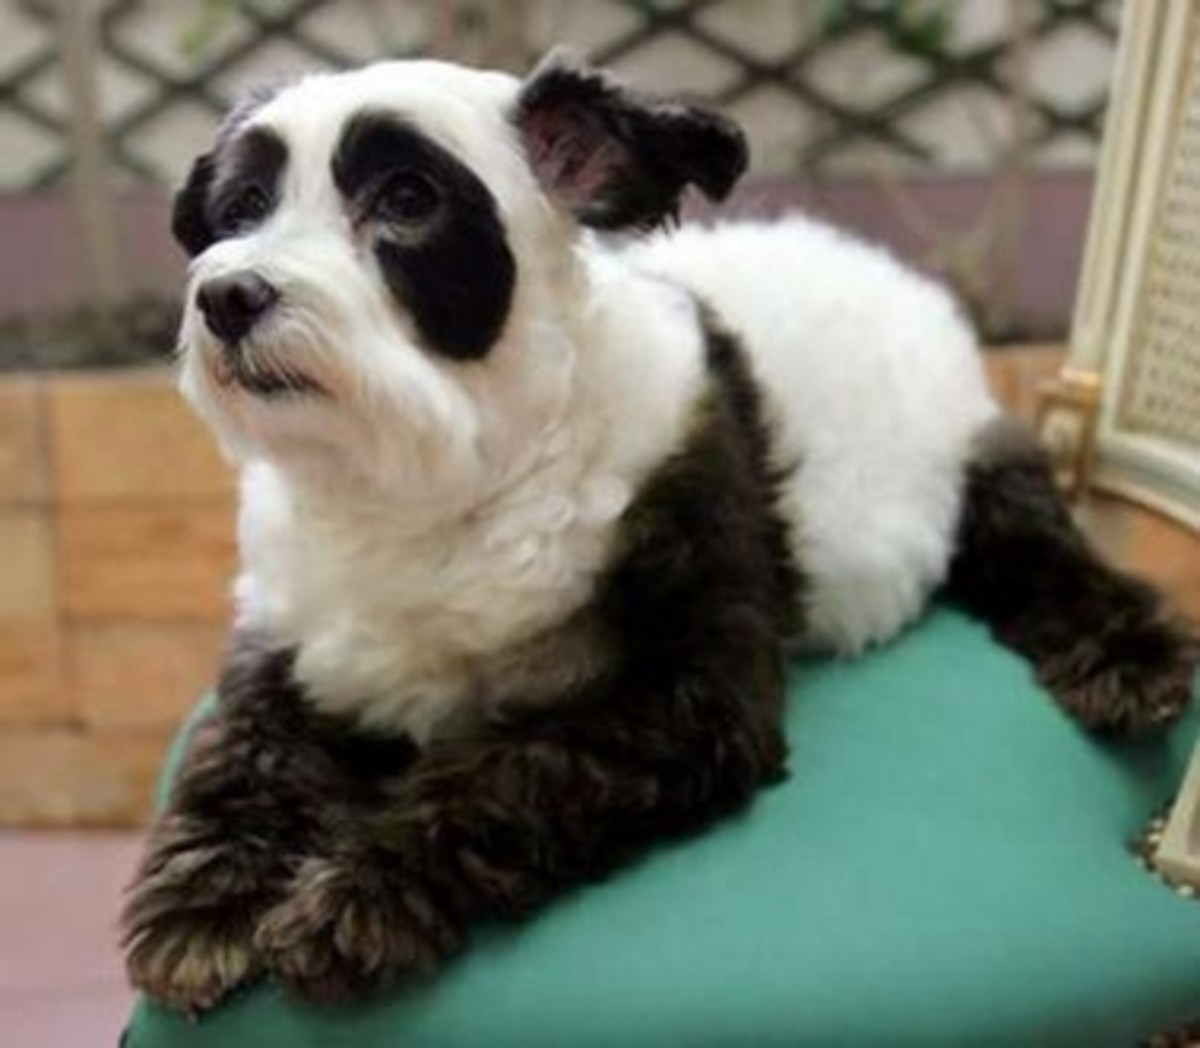 Panda Dog A New Hybrid Species Or